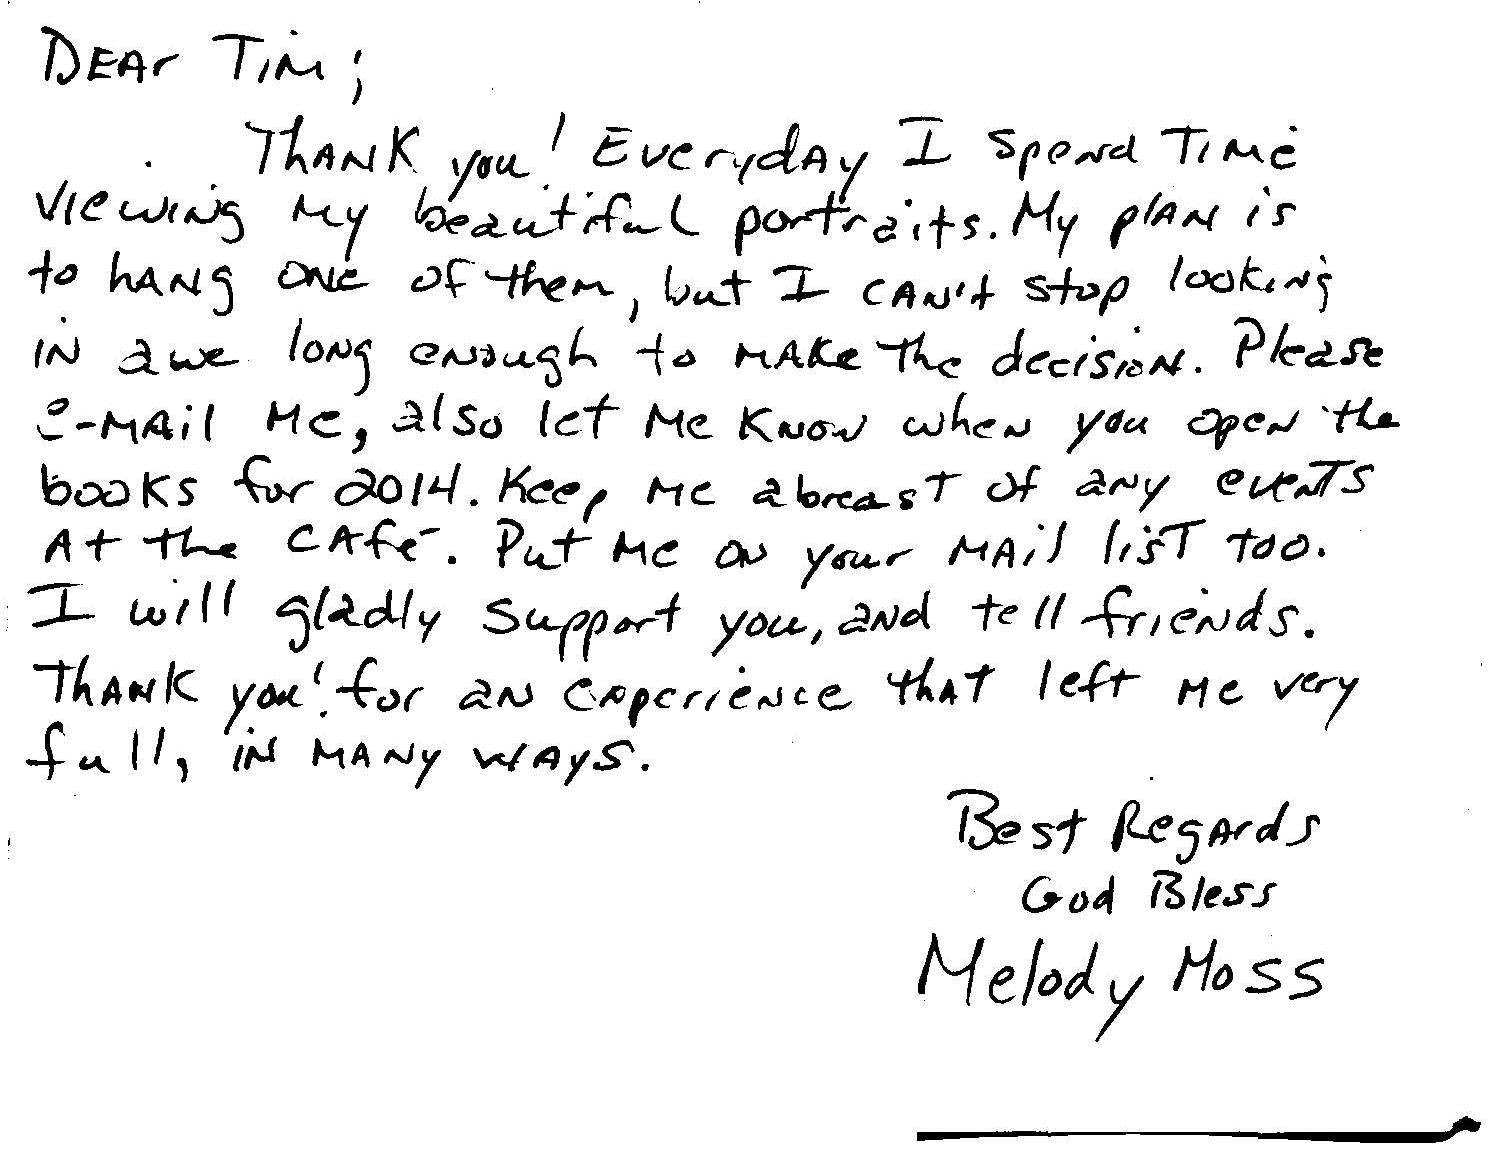 Melodie Moss's thank you note.